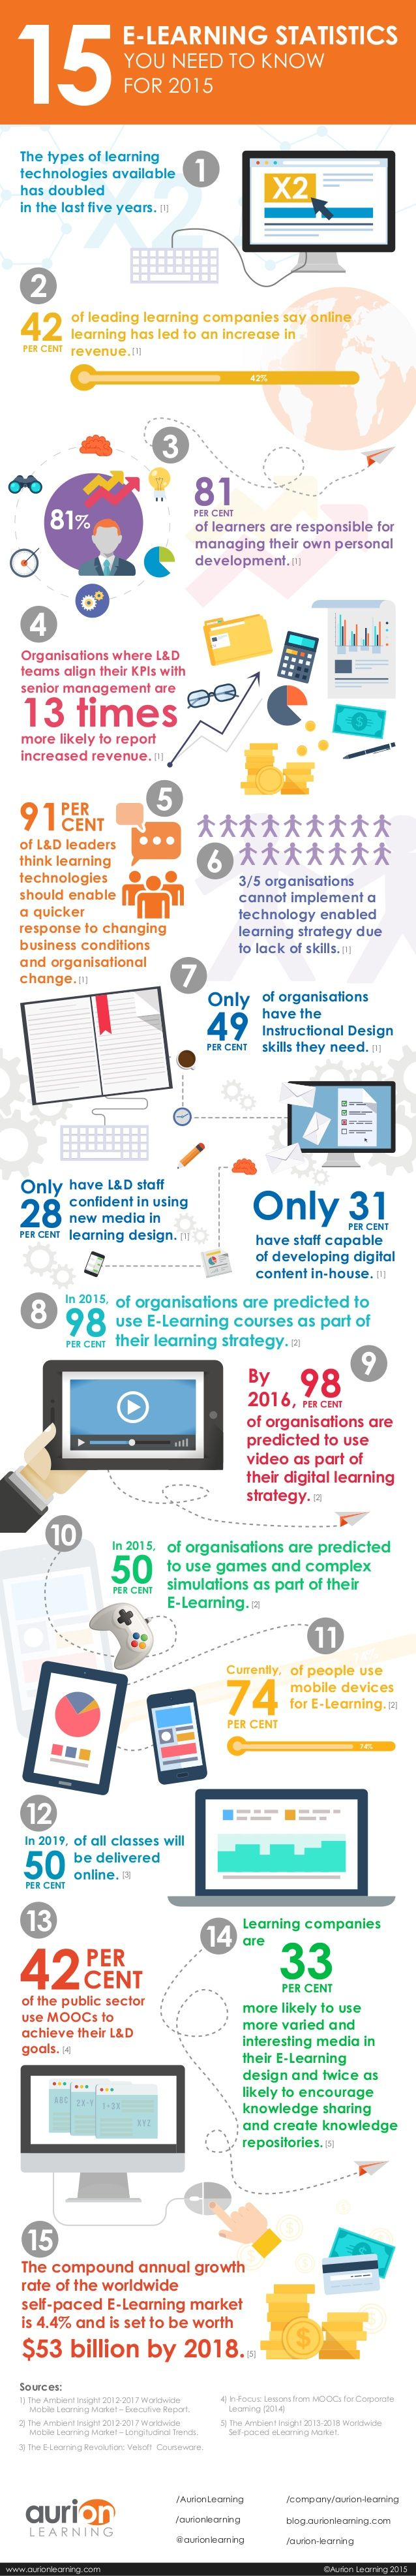 E learning poster designs - 15 Elearning Statistics You Need To Know For 2015